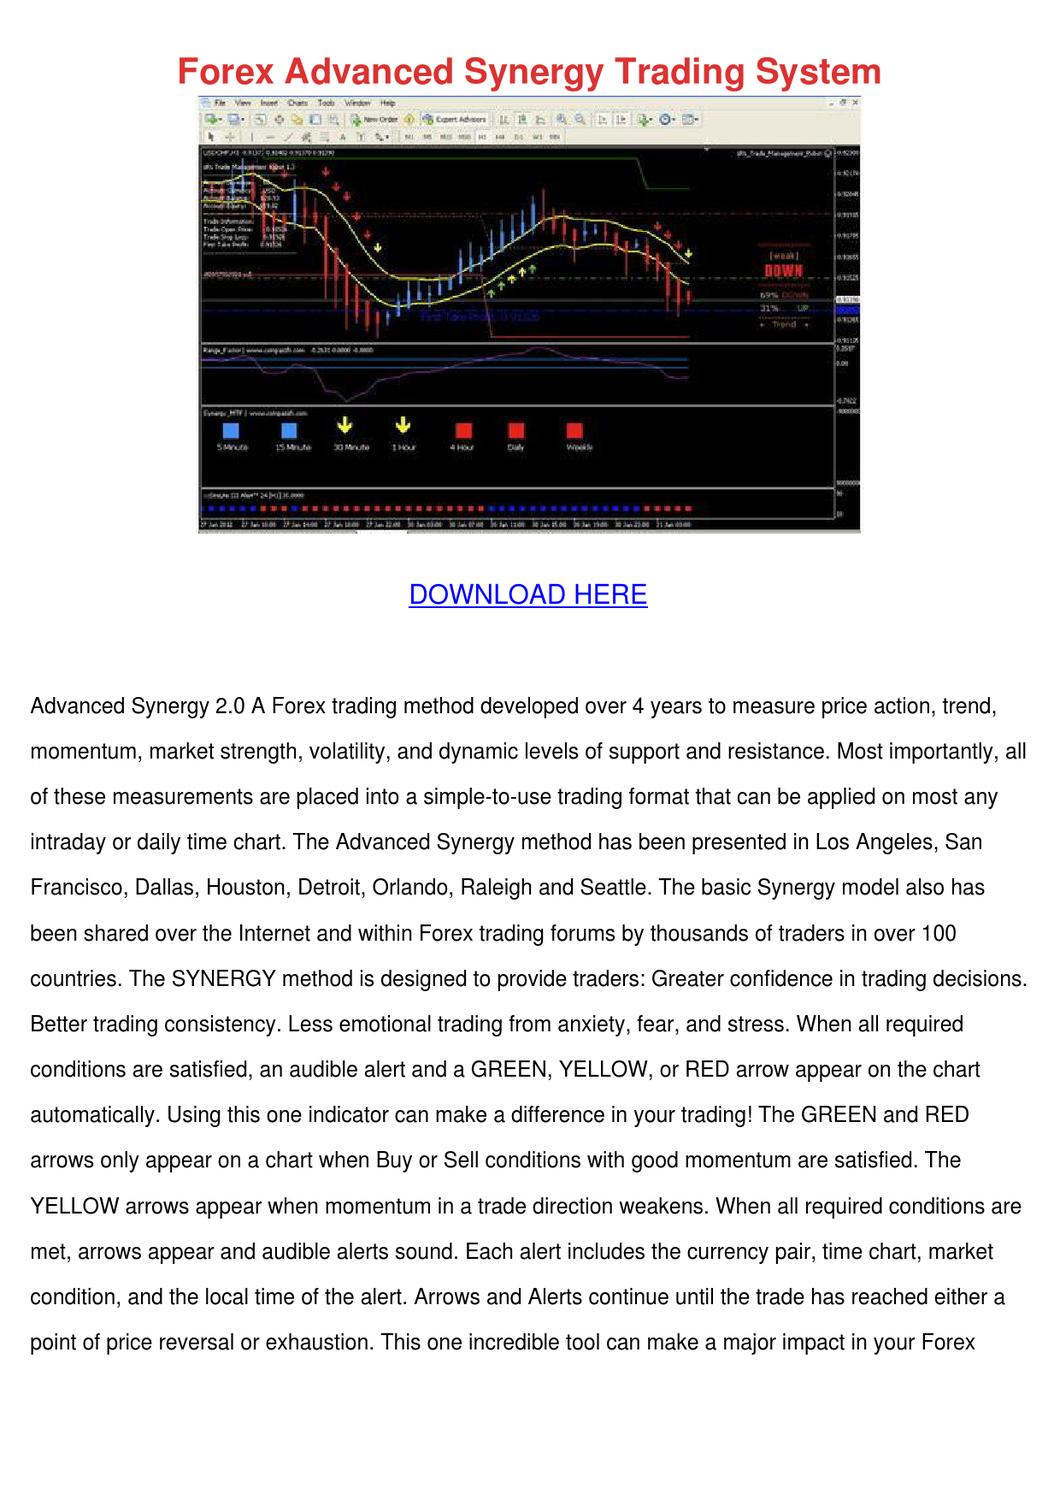 Synergy forex trading